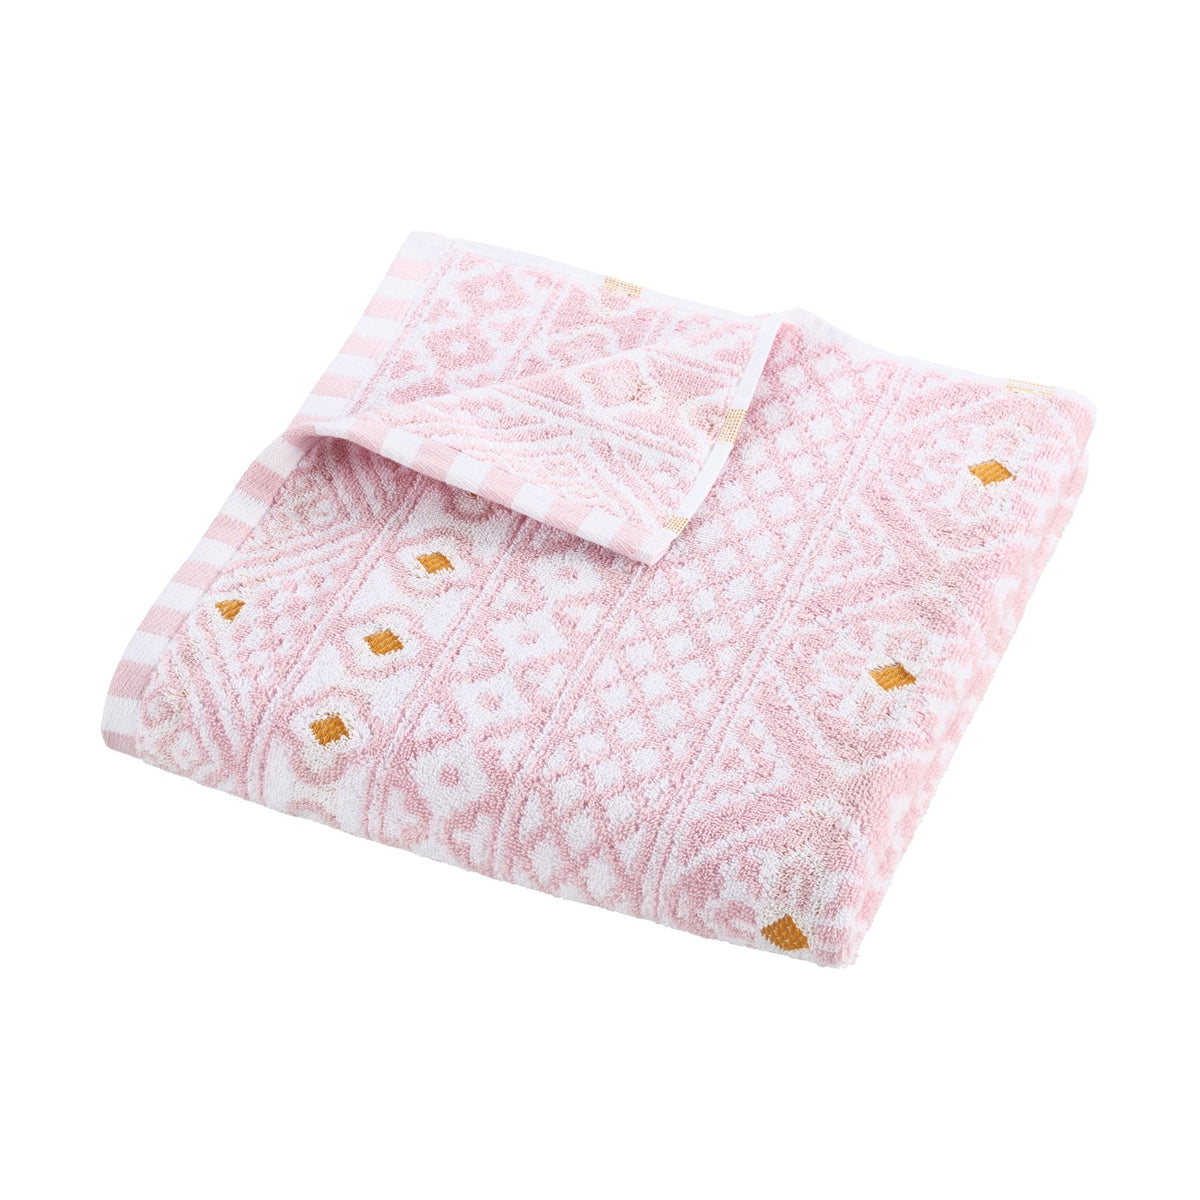 Martex Pinkadinkadew Jacquard Bath Towel Collection